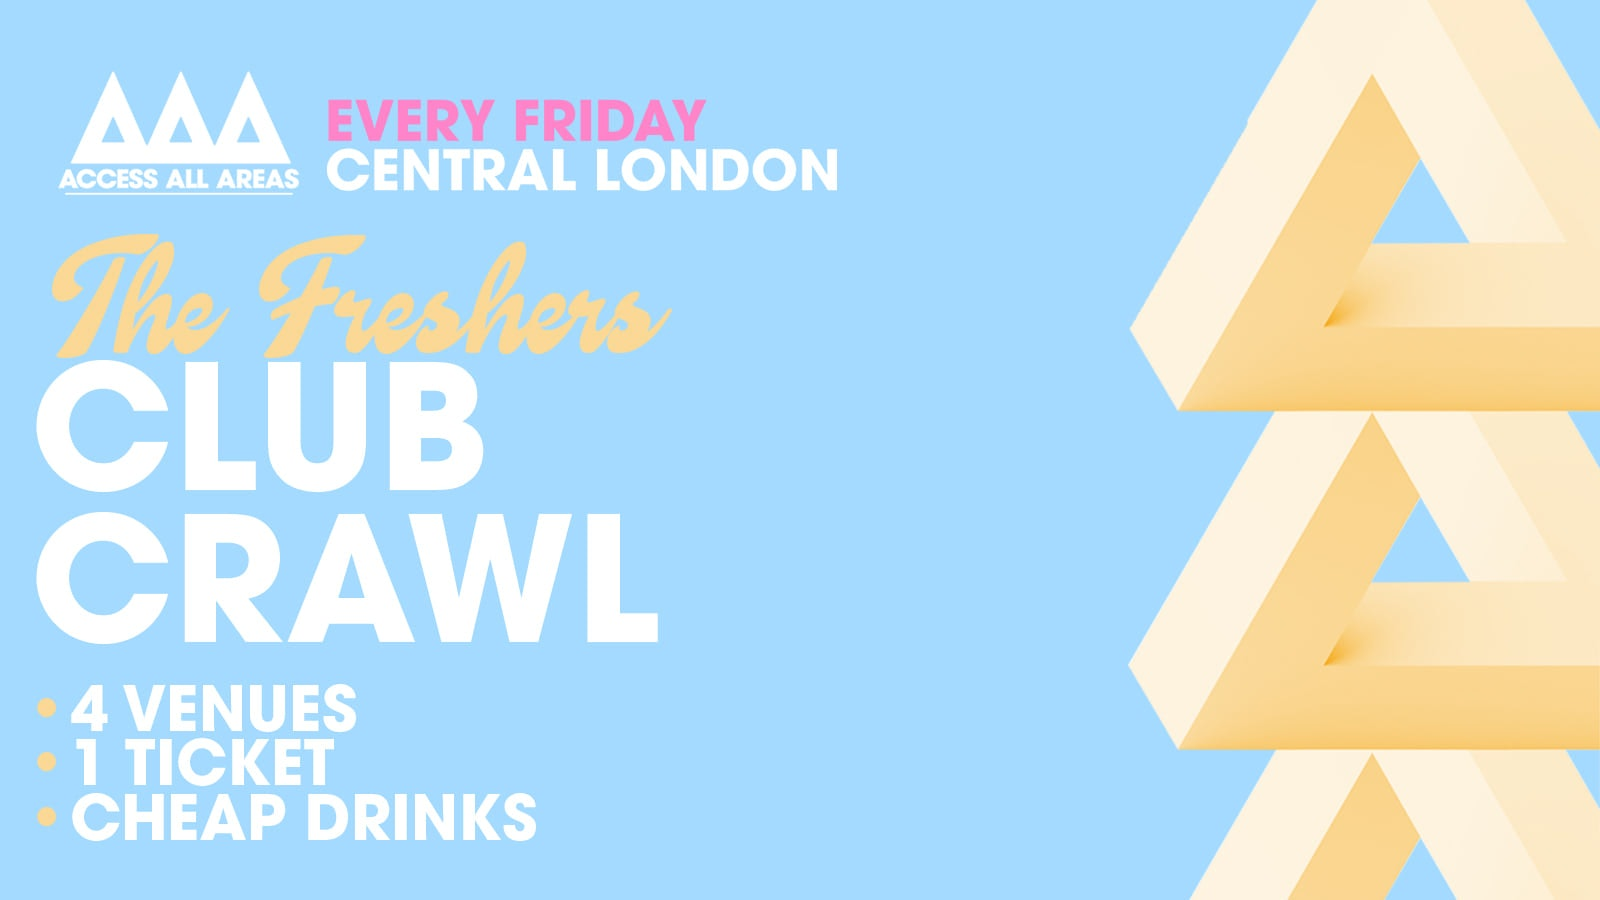 Access All Areas – The Friday Night Club Crawl | £5 Tickets & Cheap Drinks!